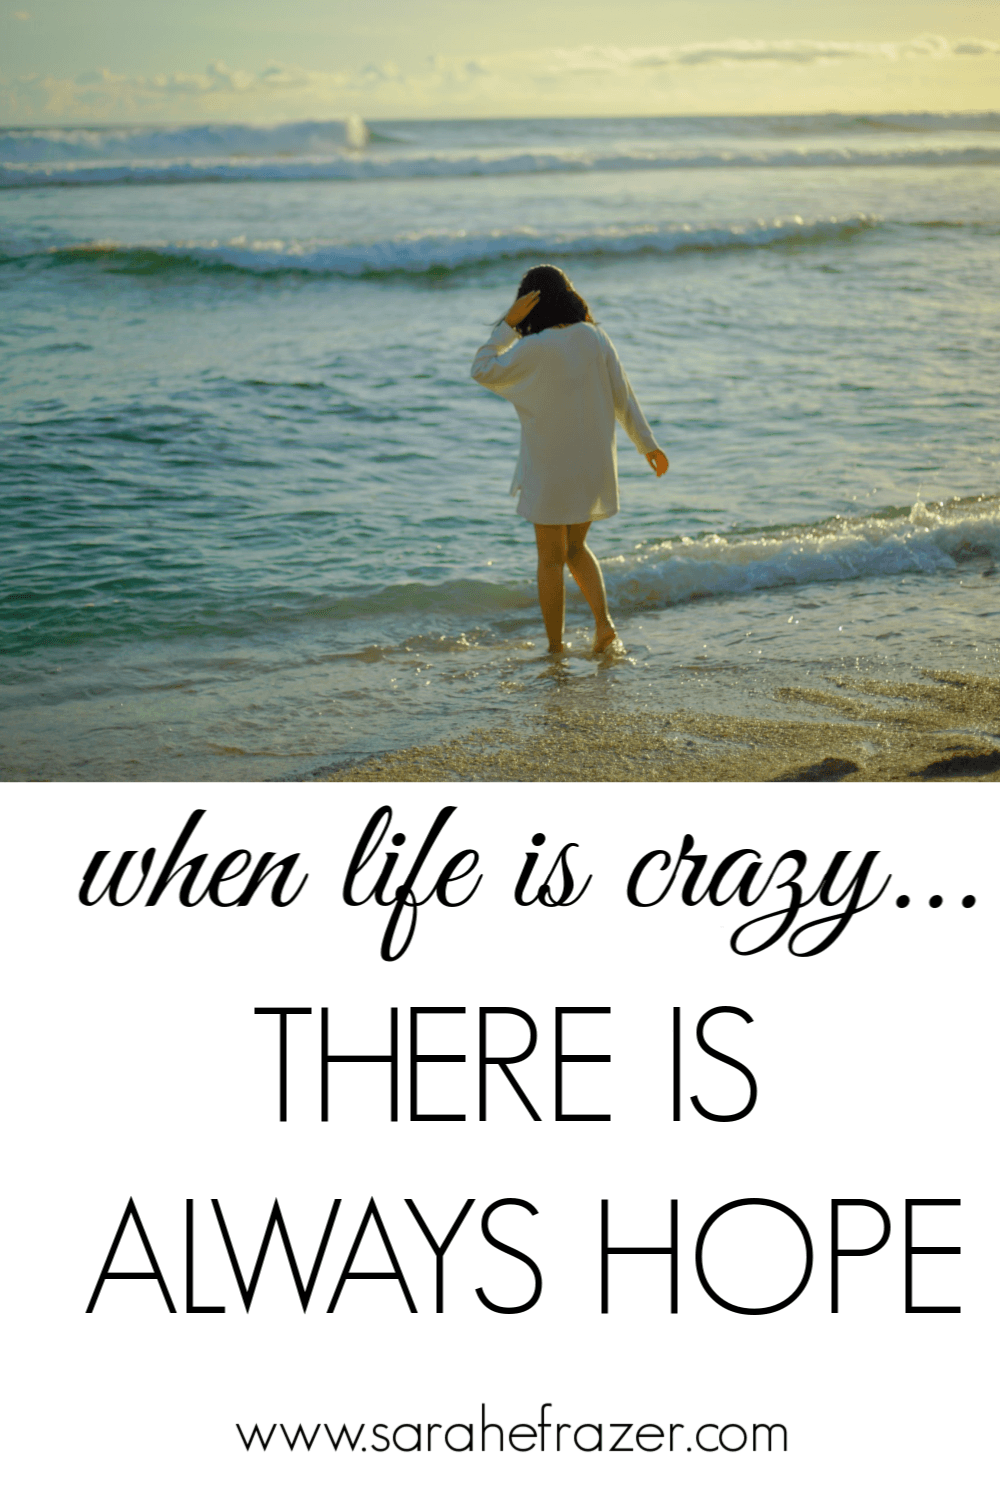 When Life is Crazy, There is Always Hope